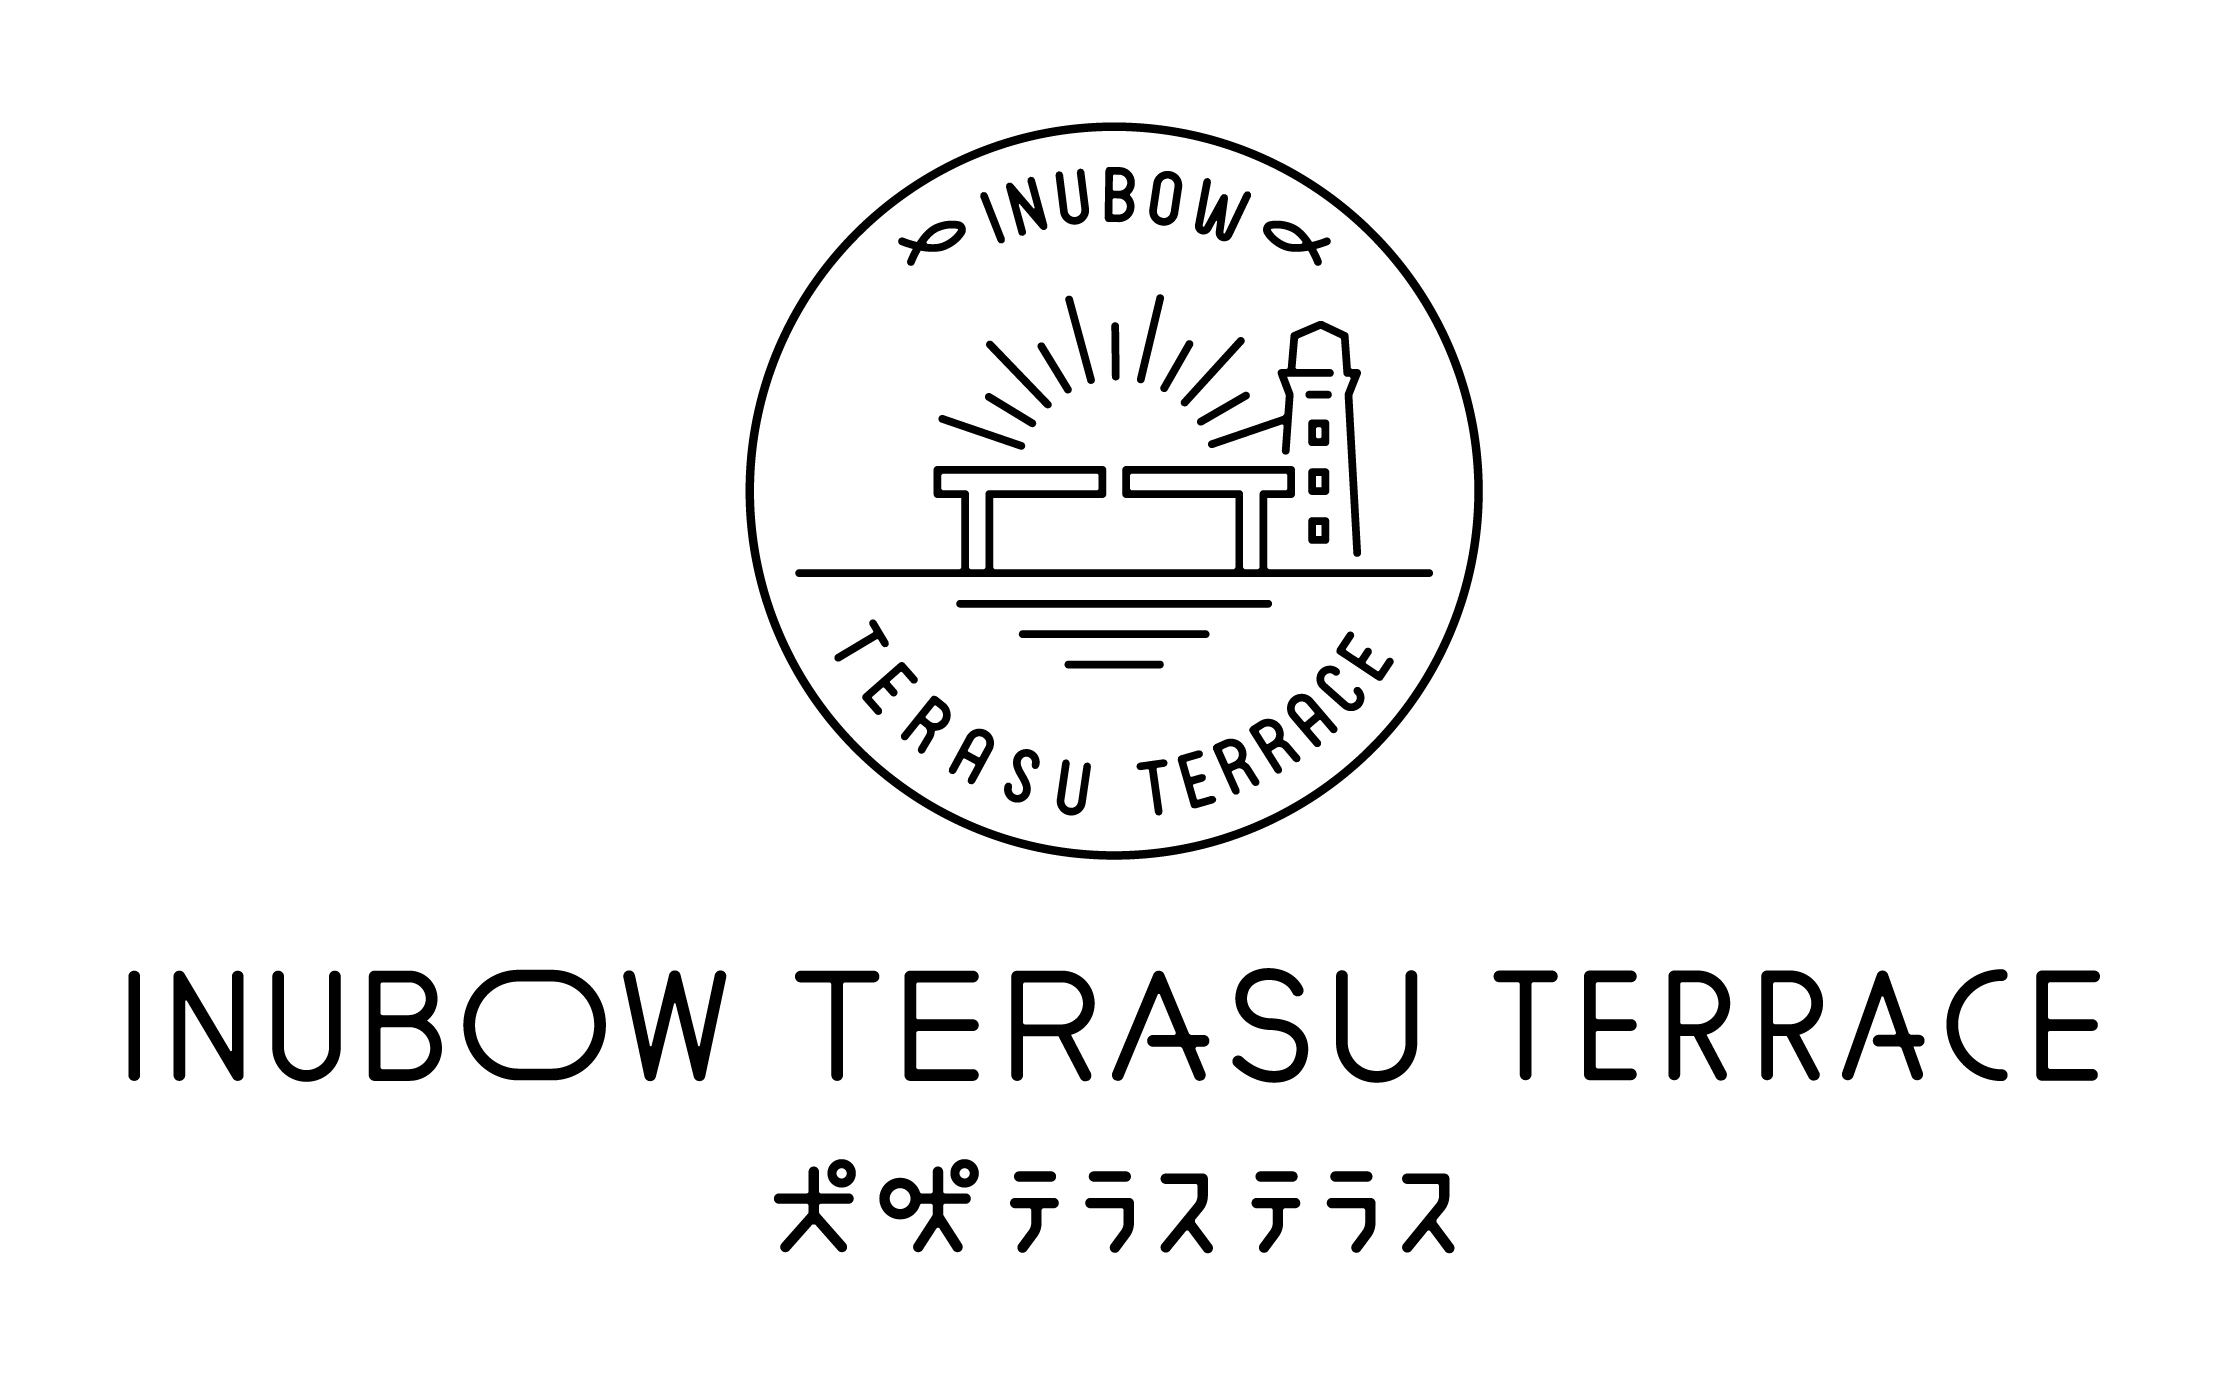 INUBOW TERASU TERRACE